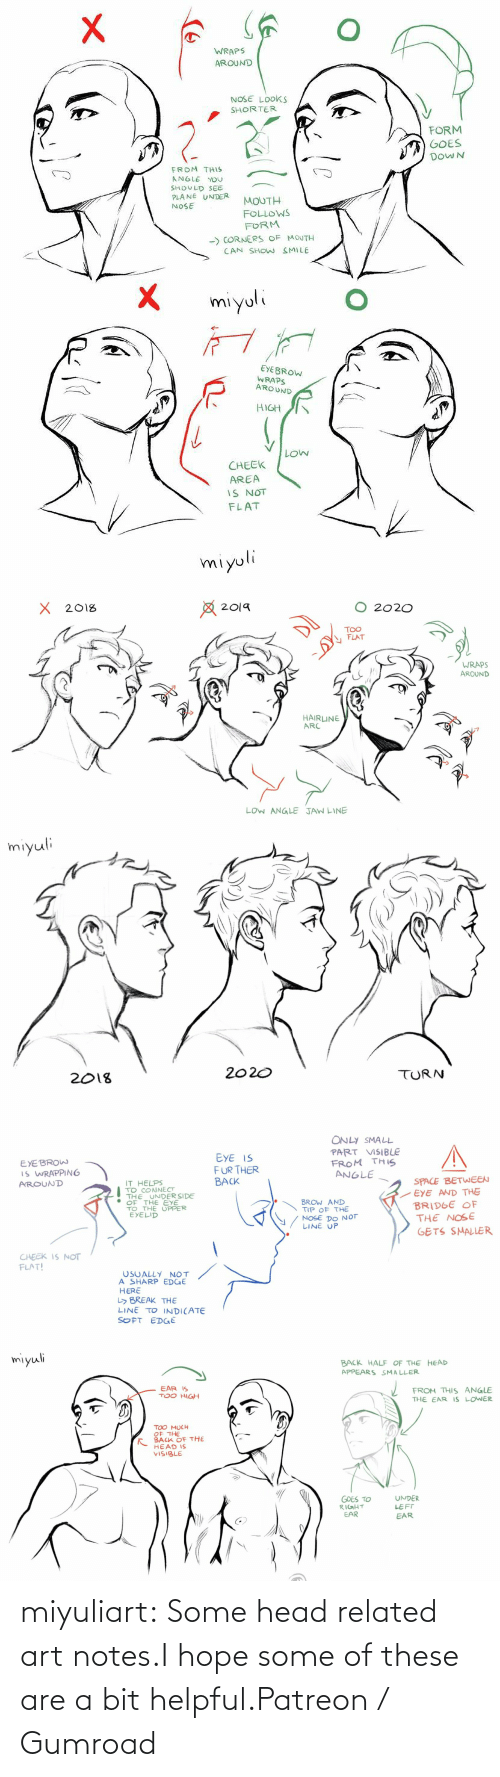 helpful: miyuliart: Some head related art notes.I hope some of these are a bit helpful.Patreon / Gumroad